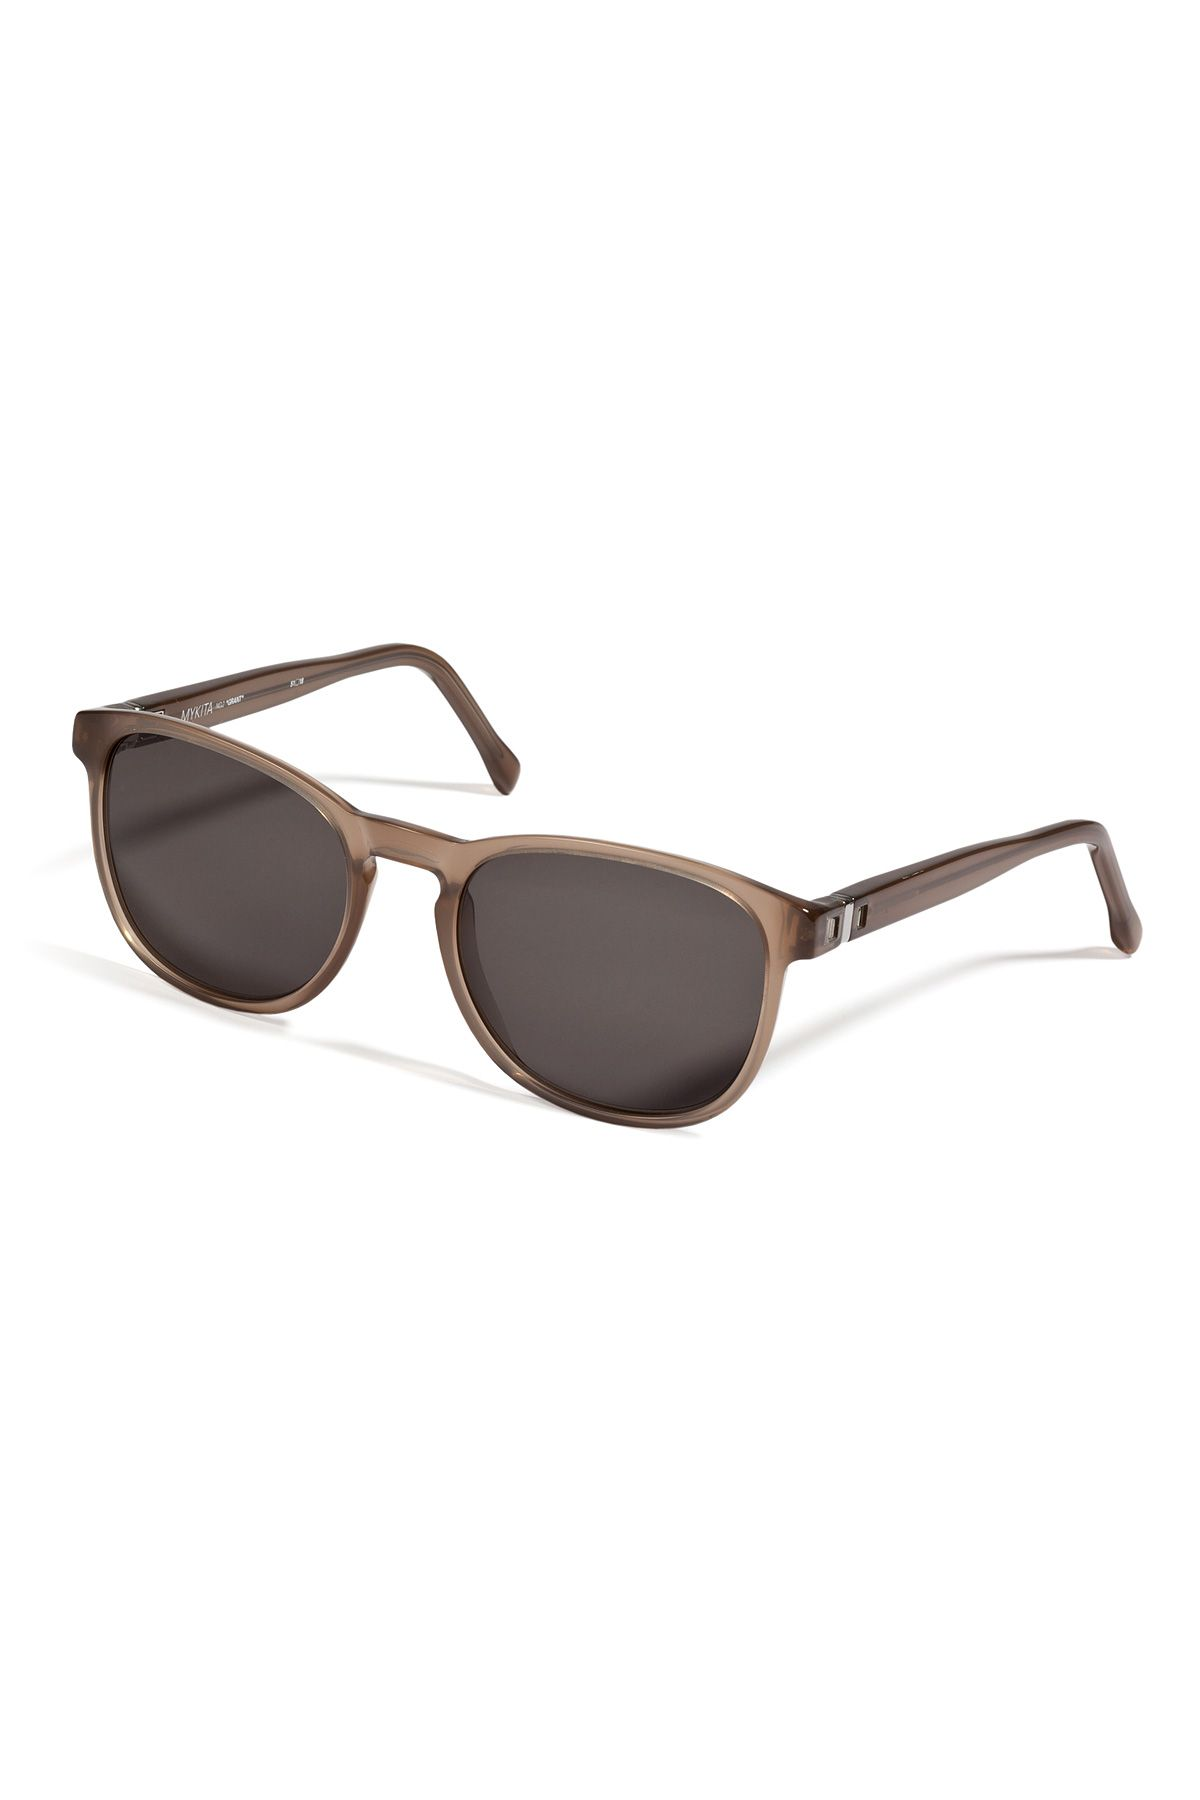 f358652c201b76 Acetate Grant Sunglasses in Taupe from MYKITA   Luxury fashion online    STYLEBOP.com